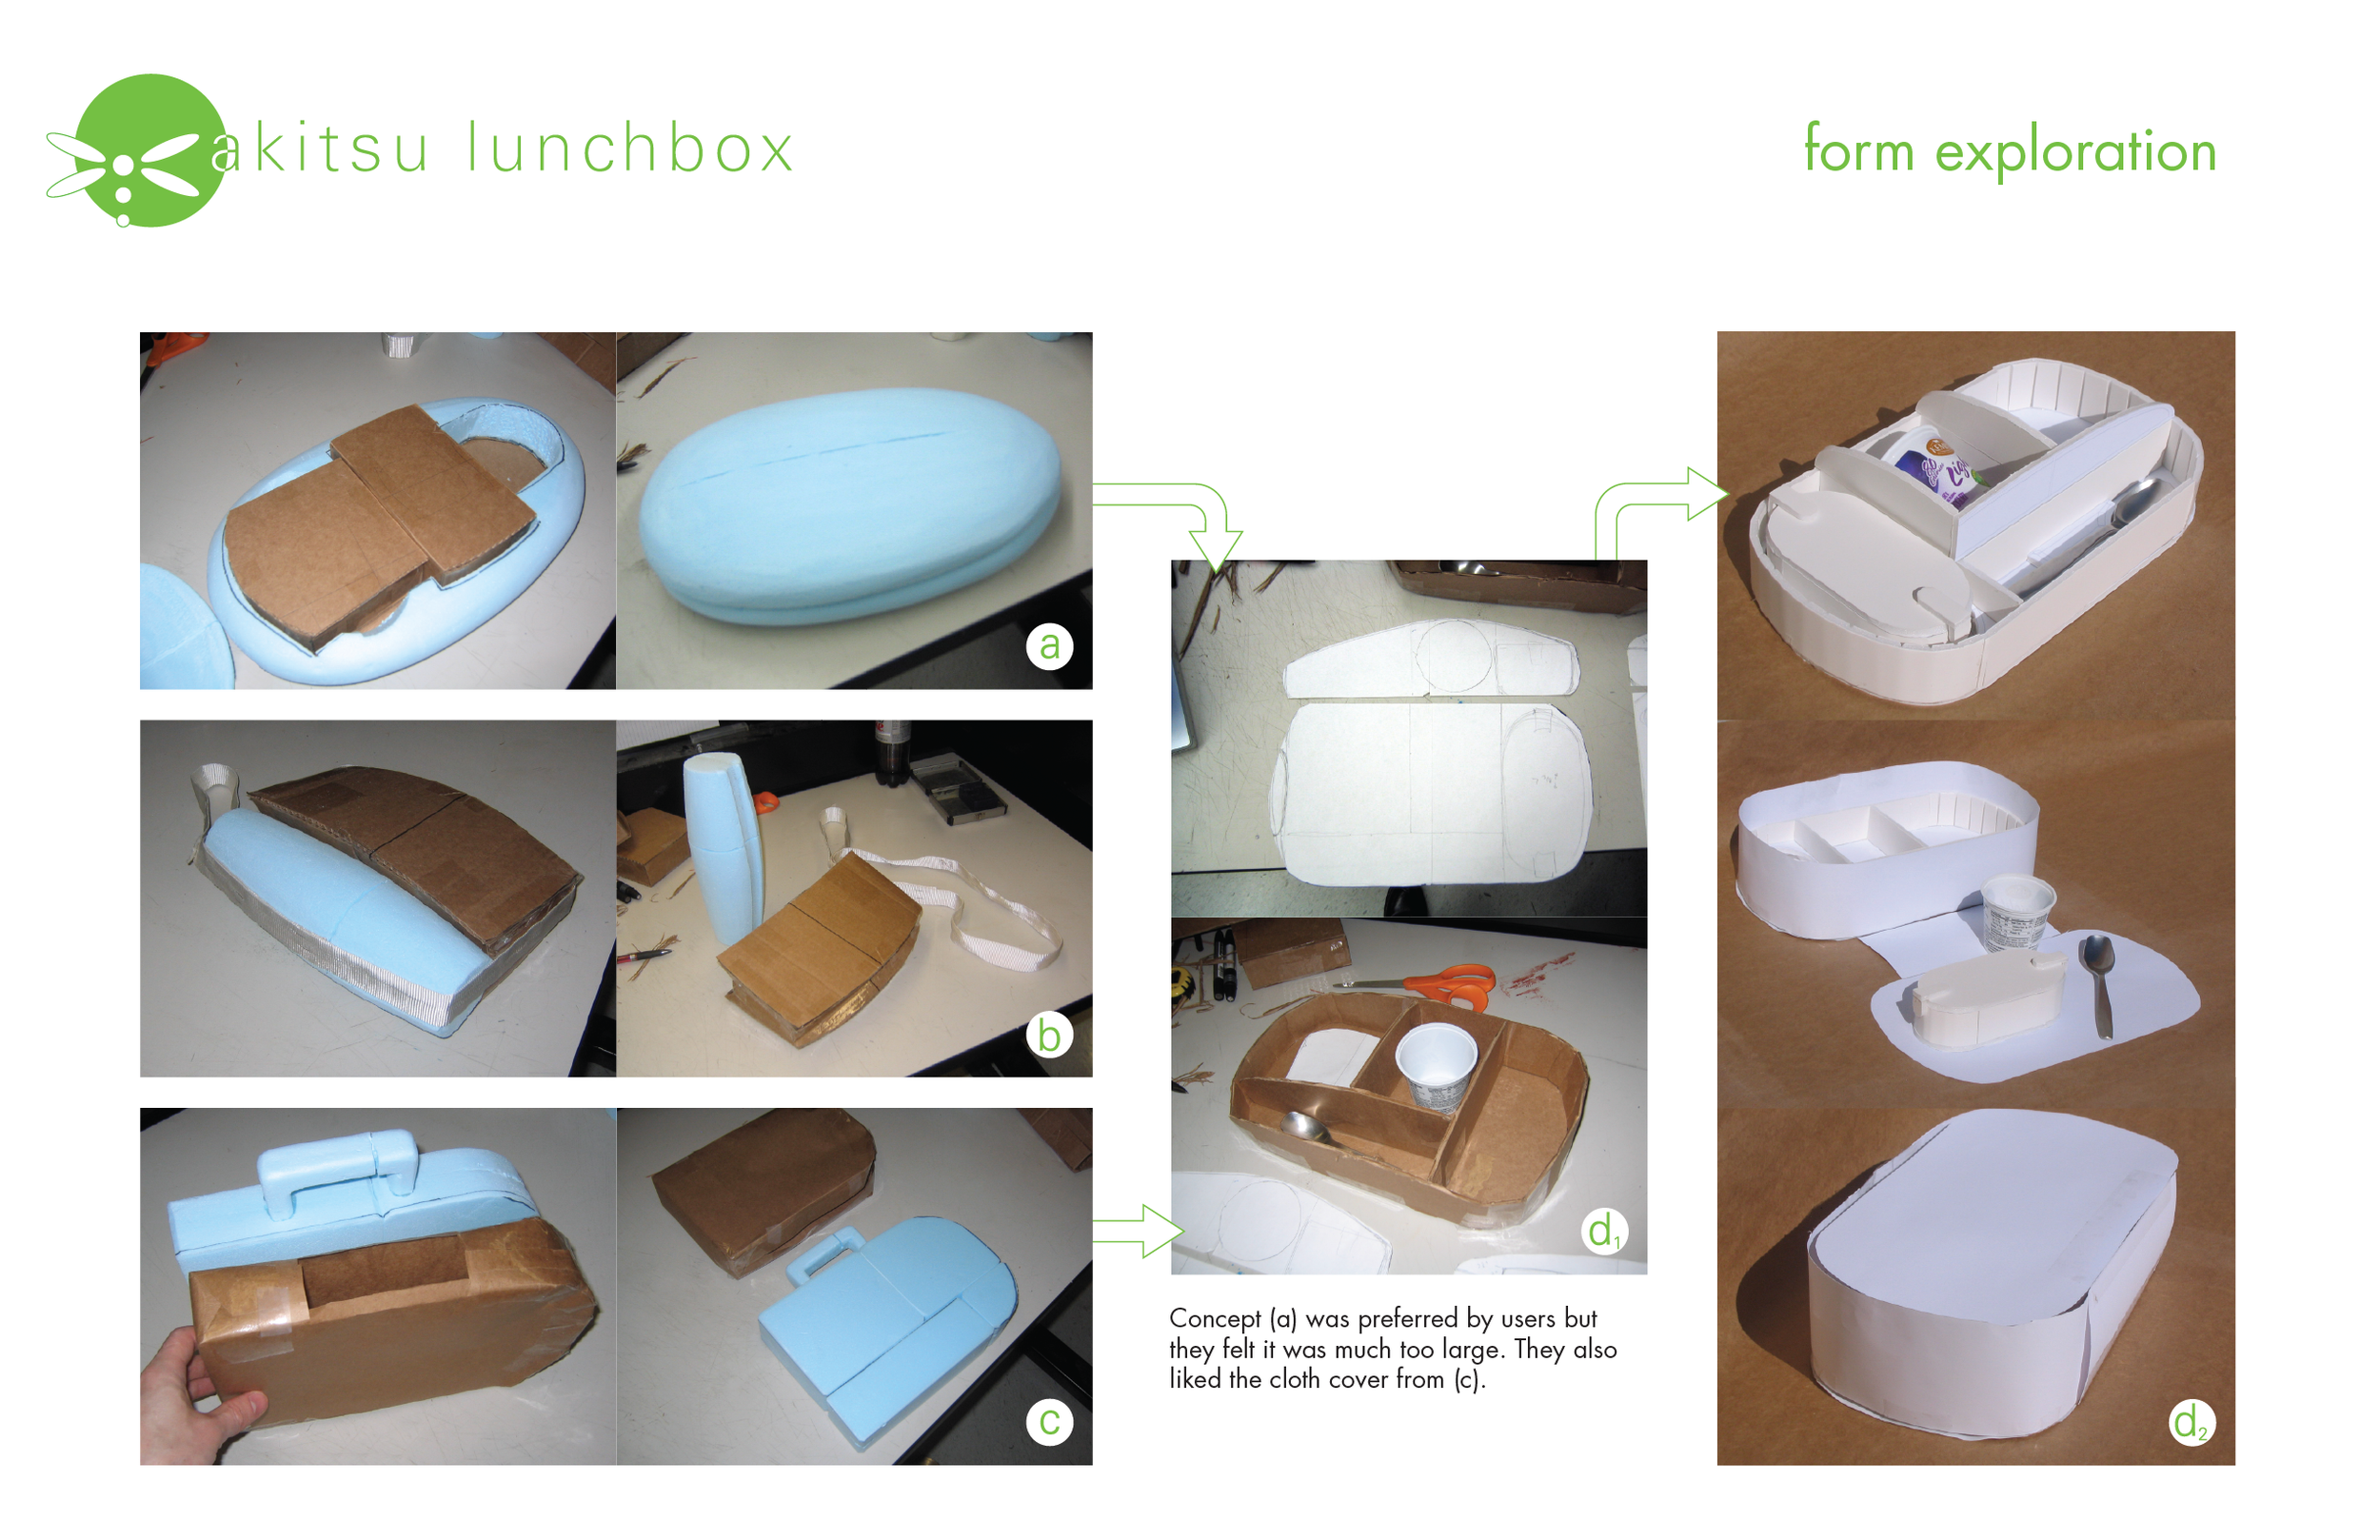 lunchbox-04.png